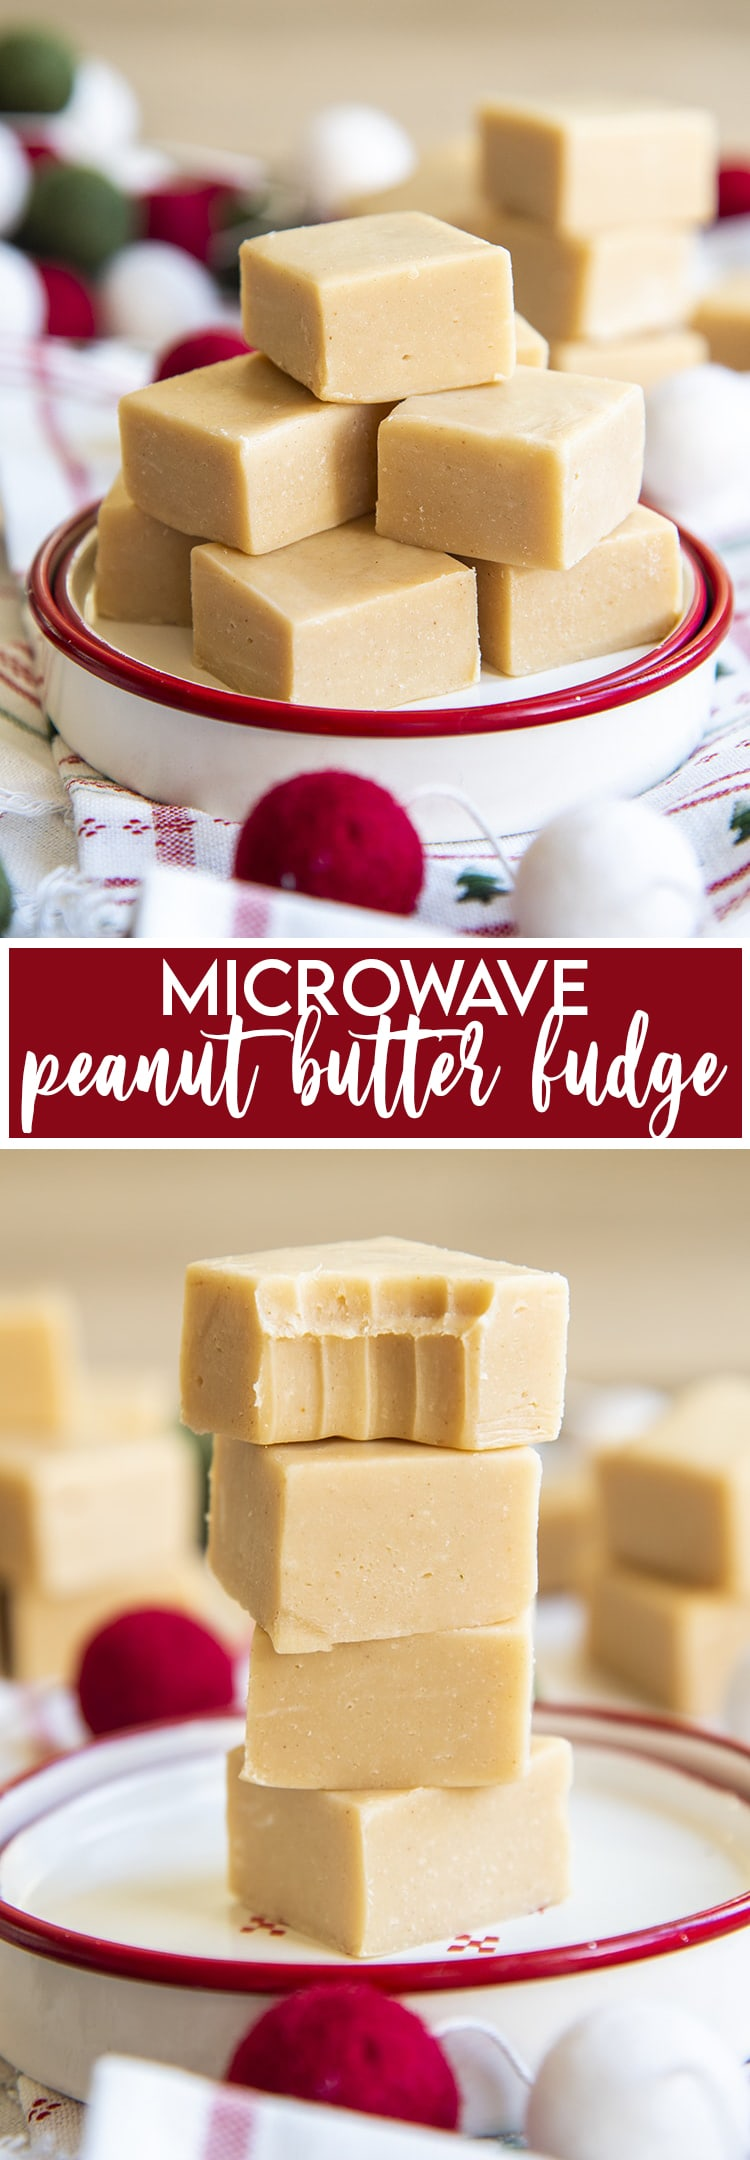 A small plate of peanut butter fudge piled together, then a text overlay underneath that says microwave peanut butter fudge. Then a stack of 4 pieces of peanut butter fudge, with the top piece having a bite out of it.